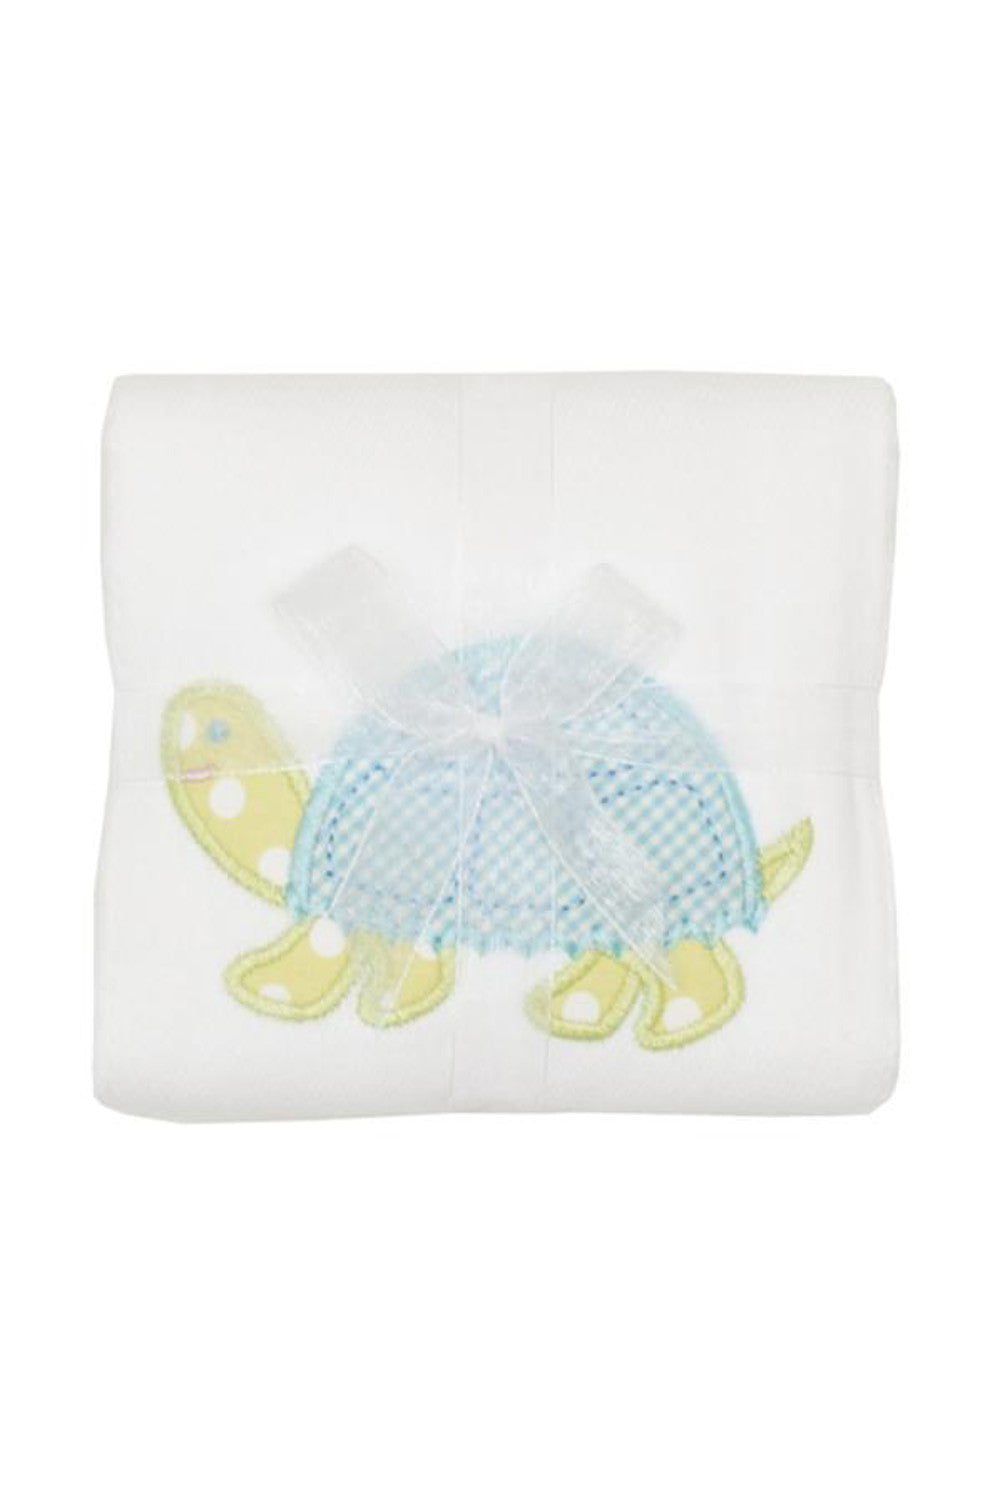 Applique Burp Pad - Turtle